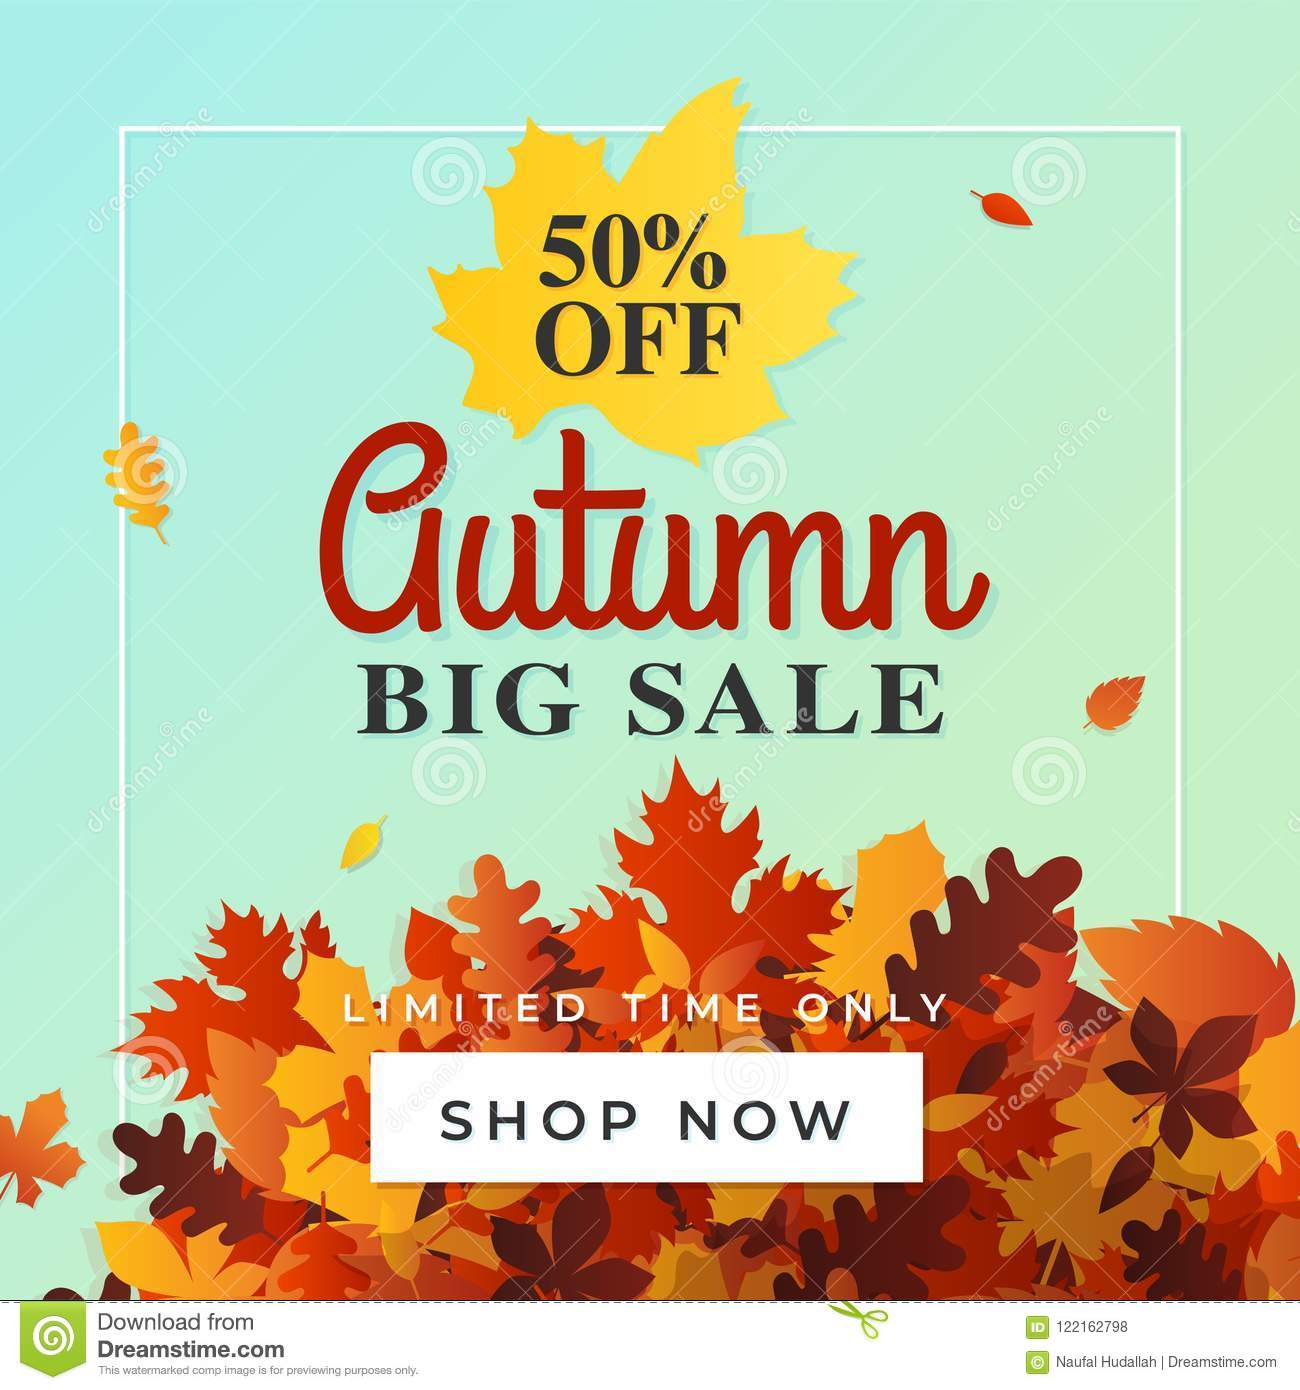 autumn big sale background vector 50 off fall discount flyer